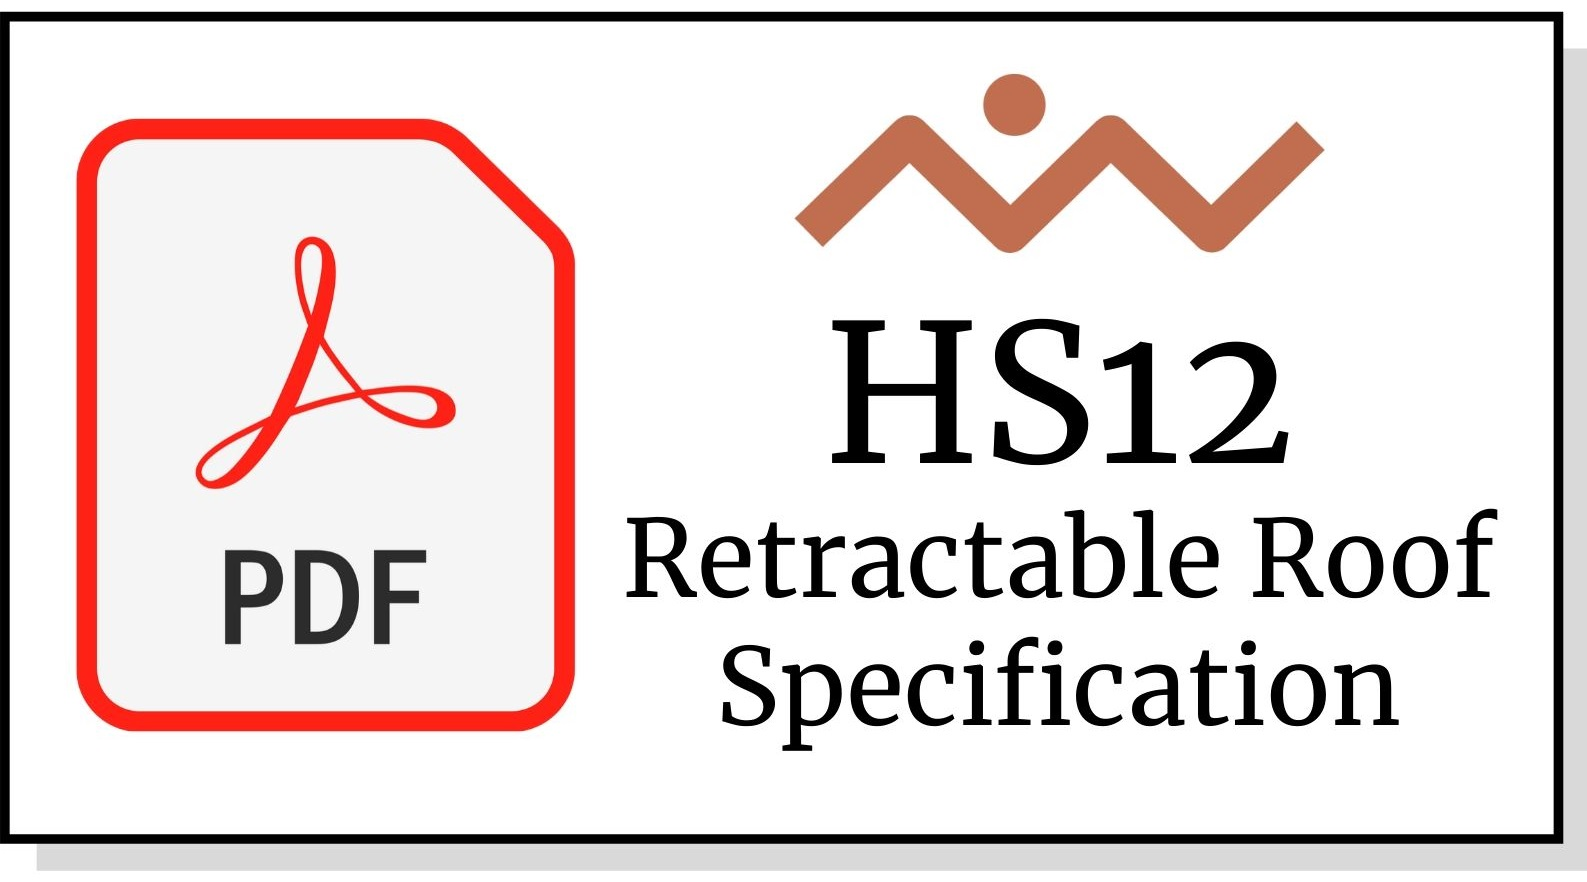 HS12 Retractable Roof Awning Specification